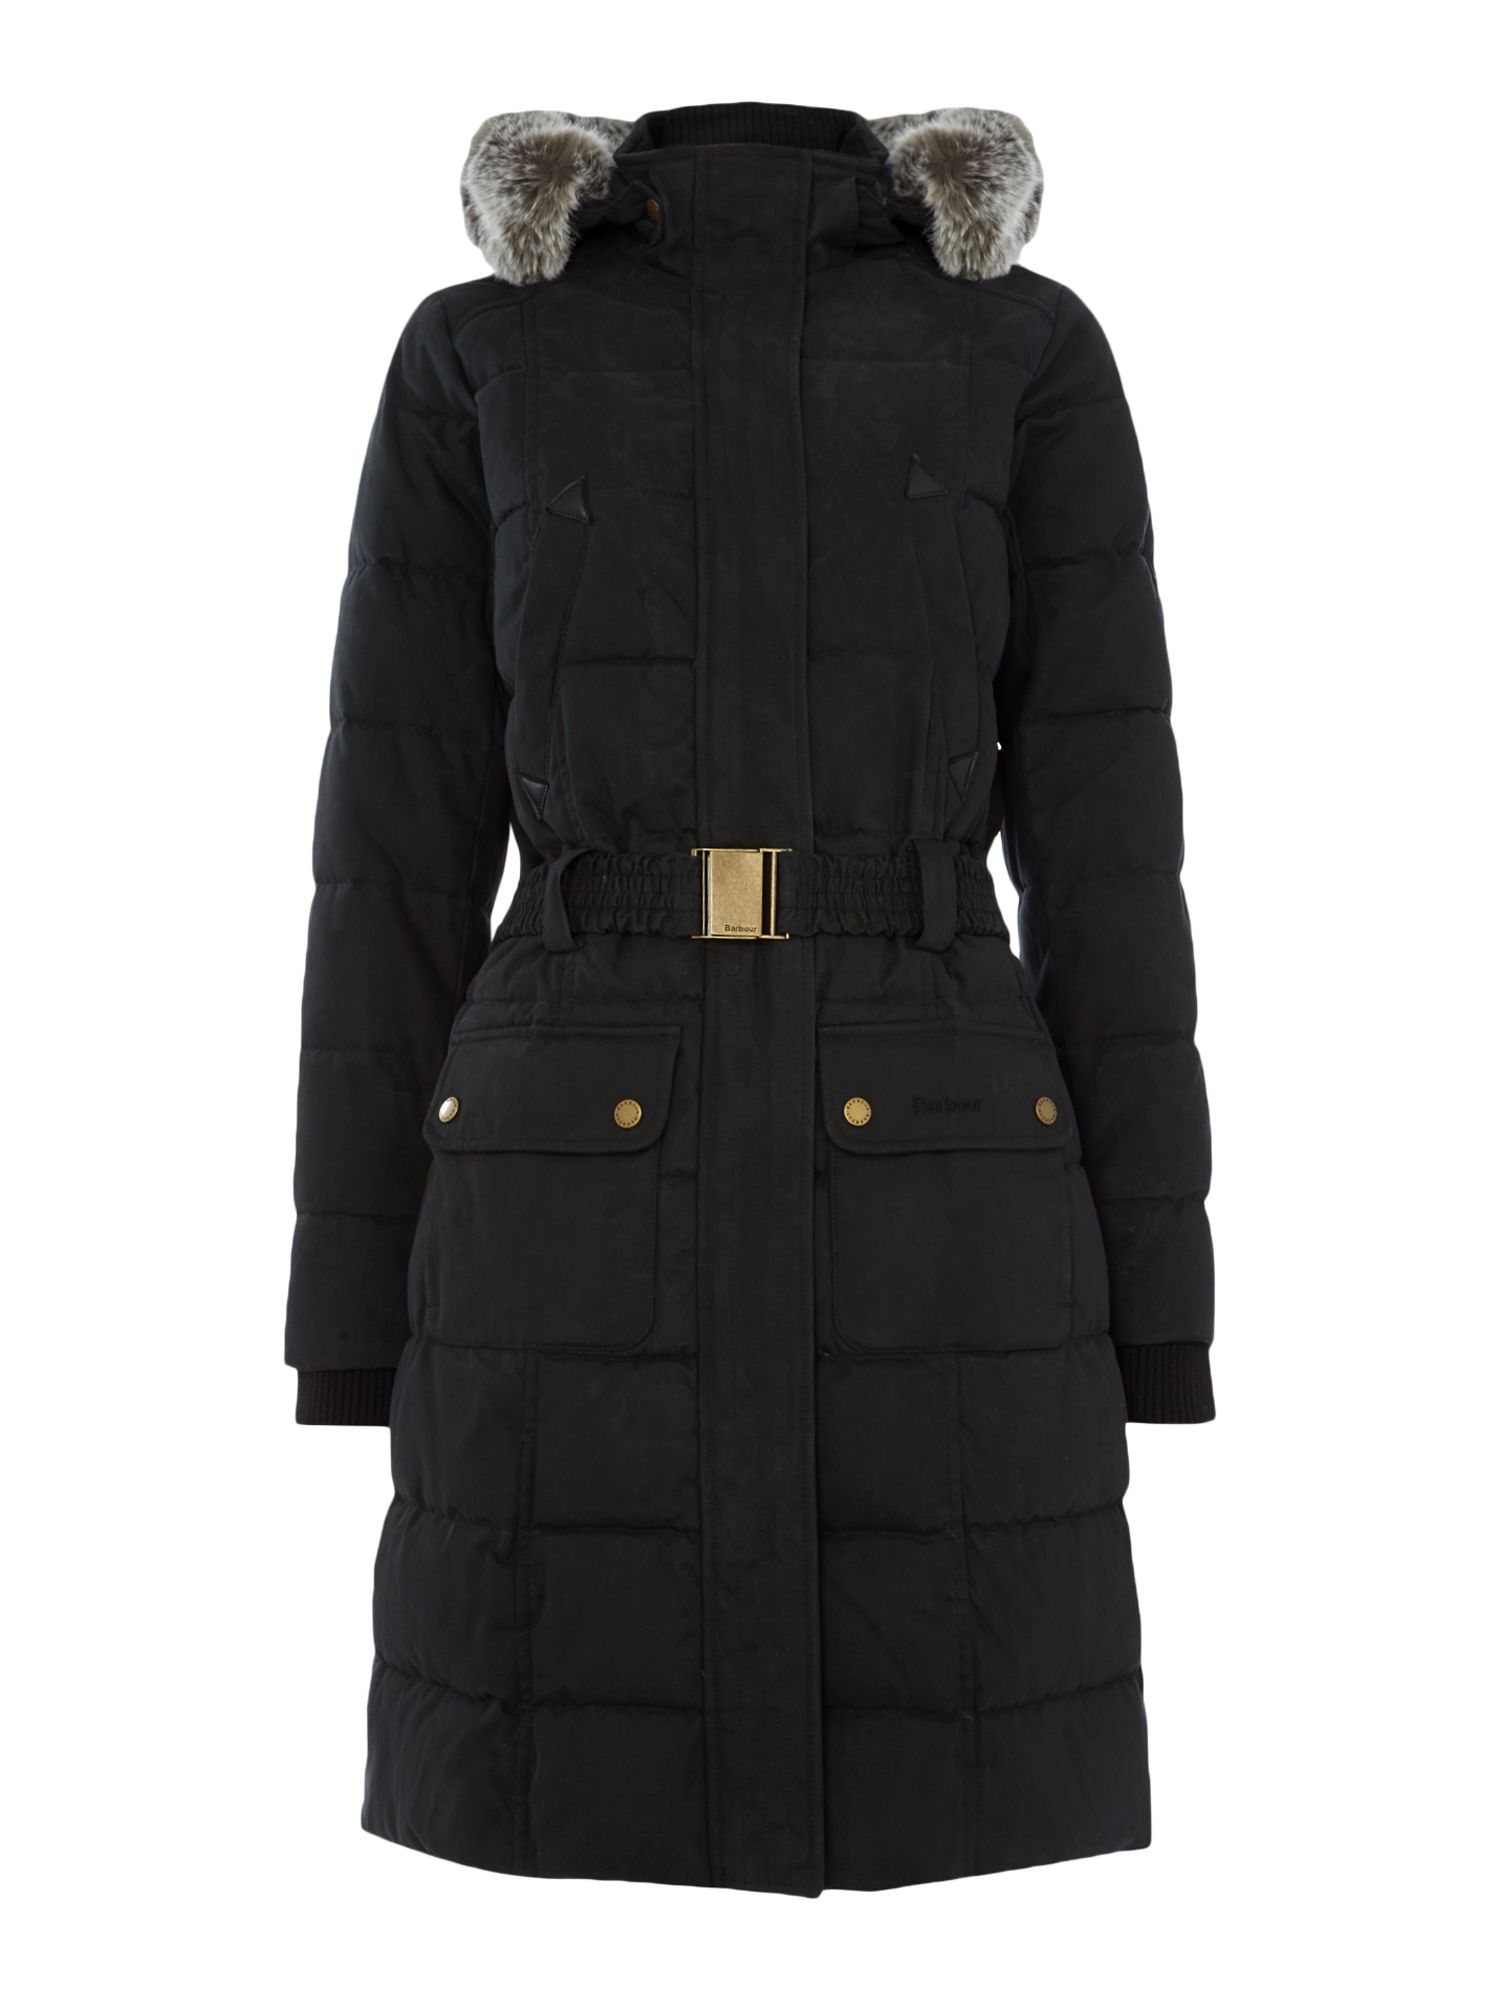 Barbour Barbour belton quilt exclusive, Black